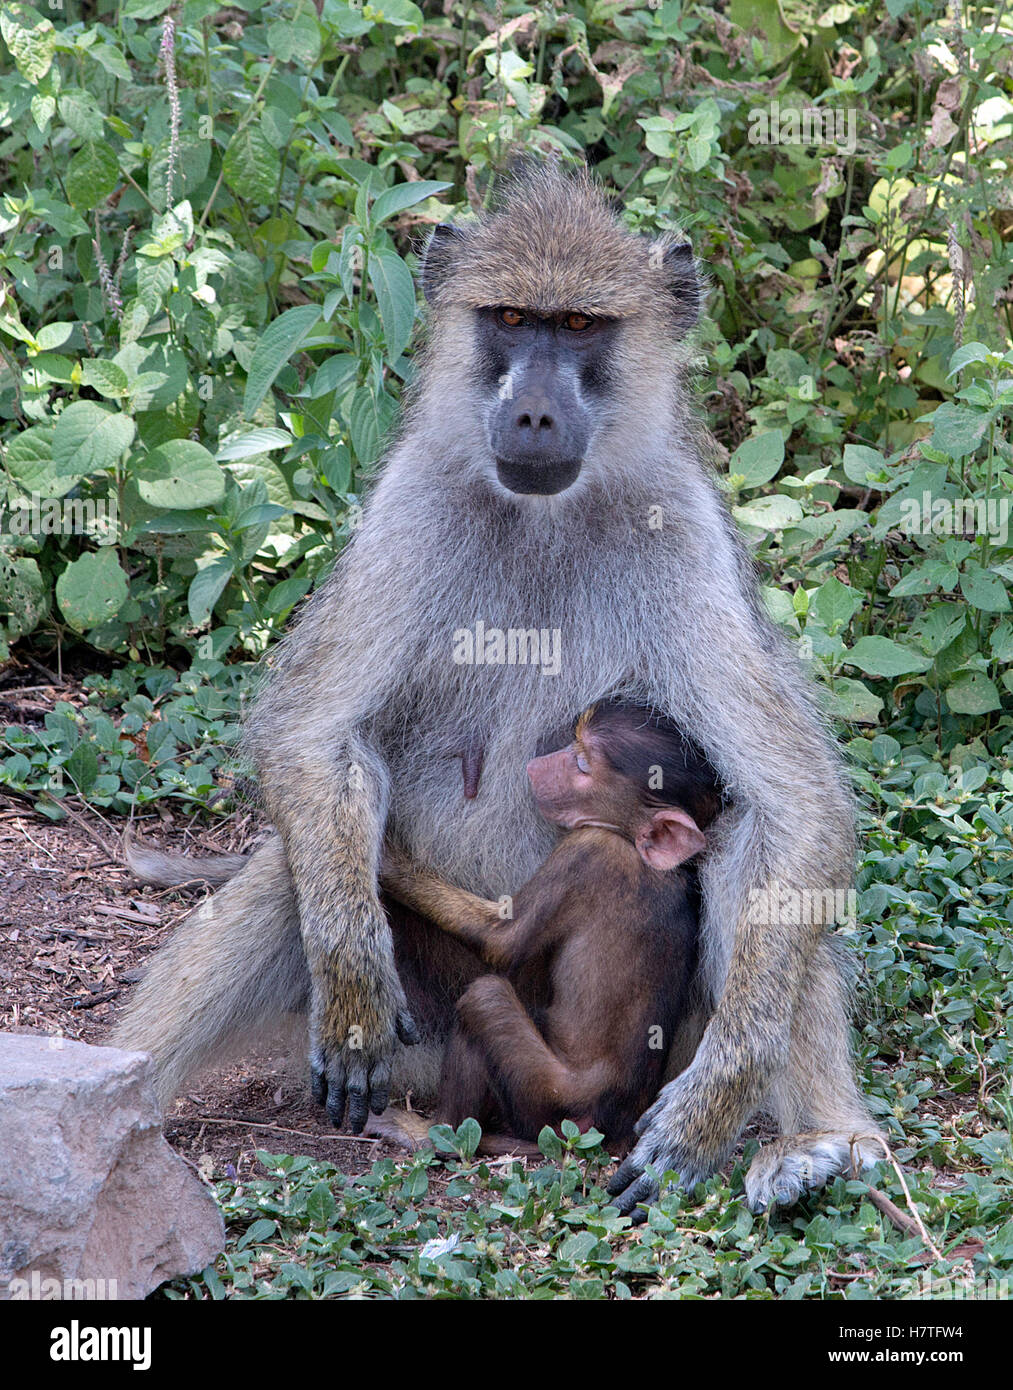 This image of a baboon nurturing its kid was taken during a Safari in the Amboseli National Reserve in Kenya. - Stock Image